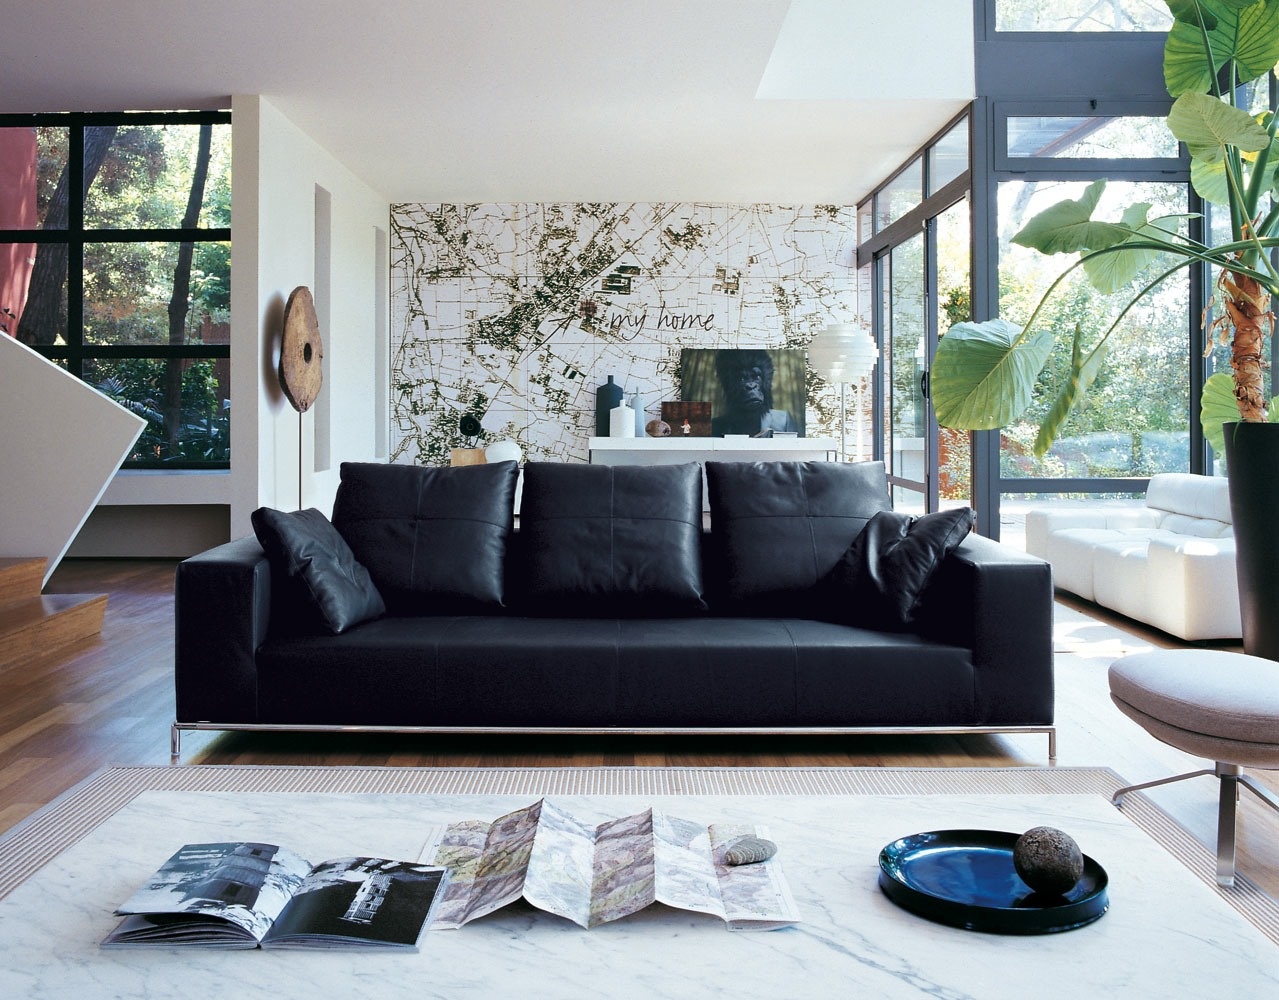 Image from Home Designing